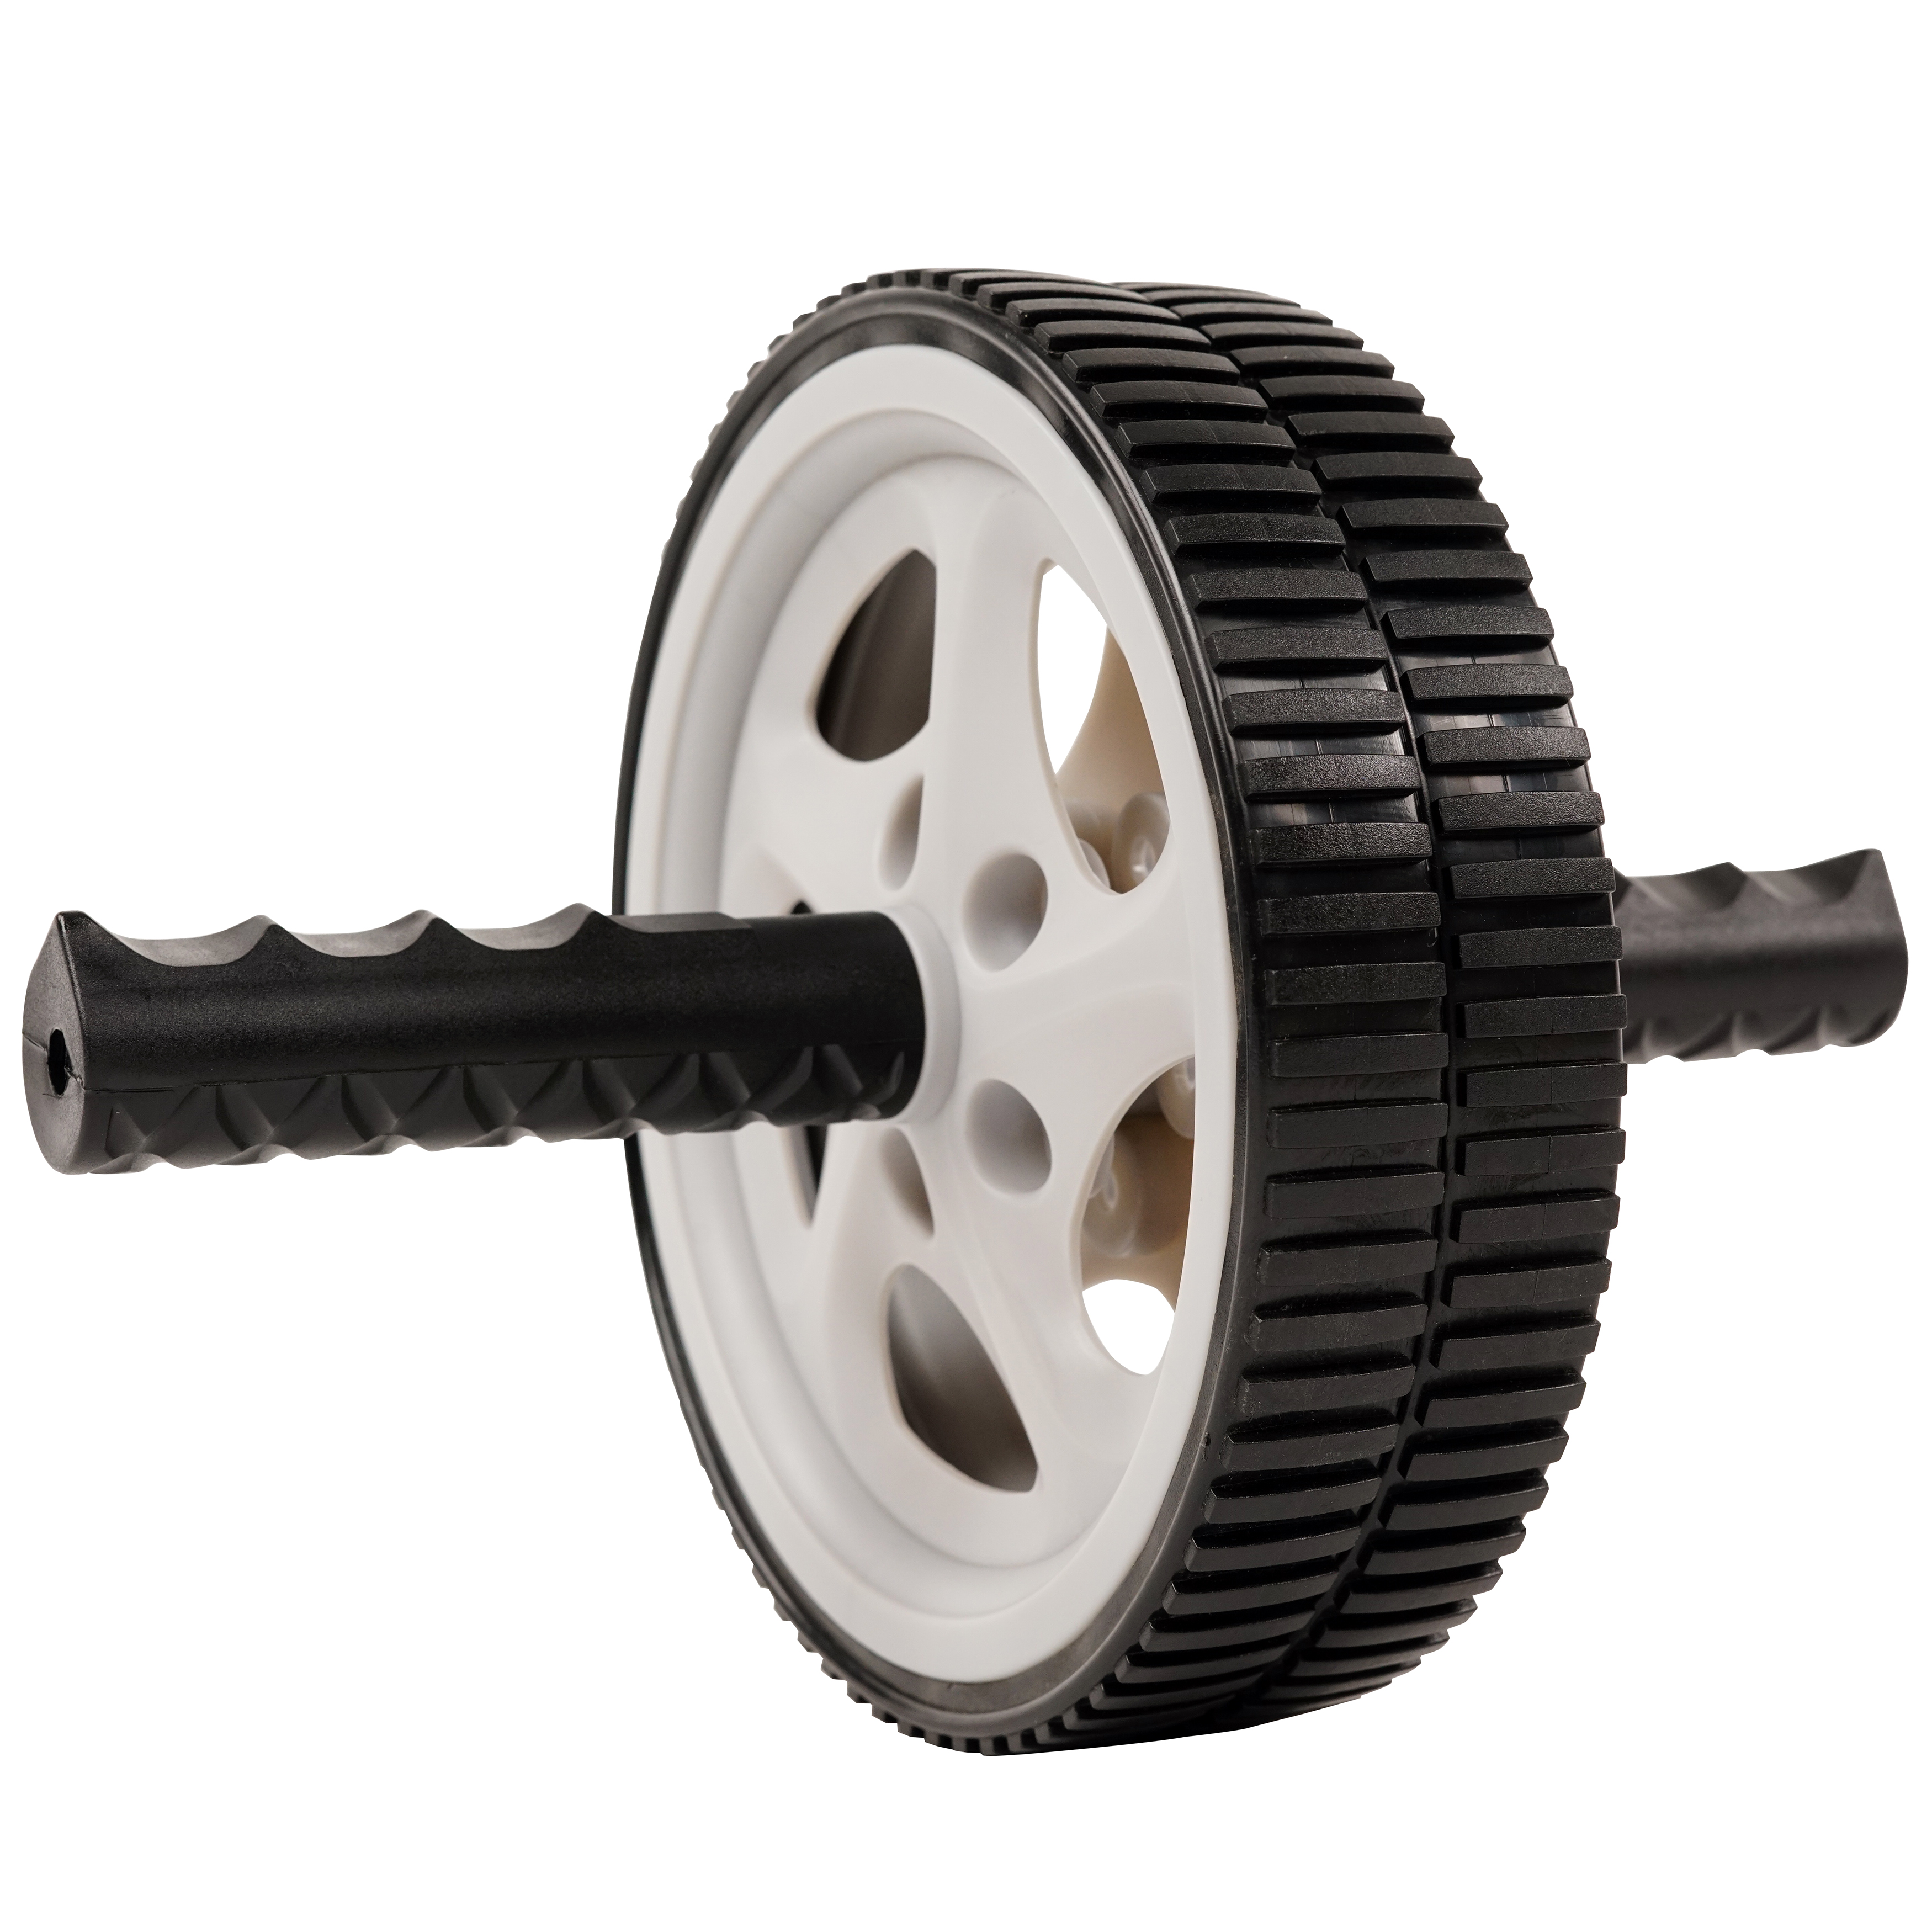 Sunny Health & Fitness NO. 003 Ab Roller Exercise Wheel